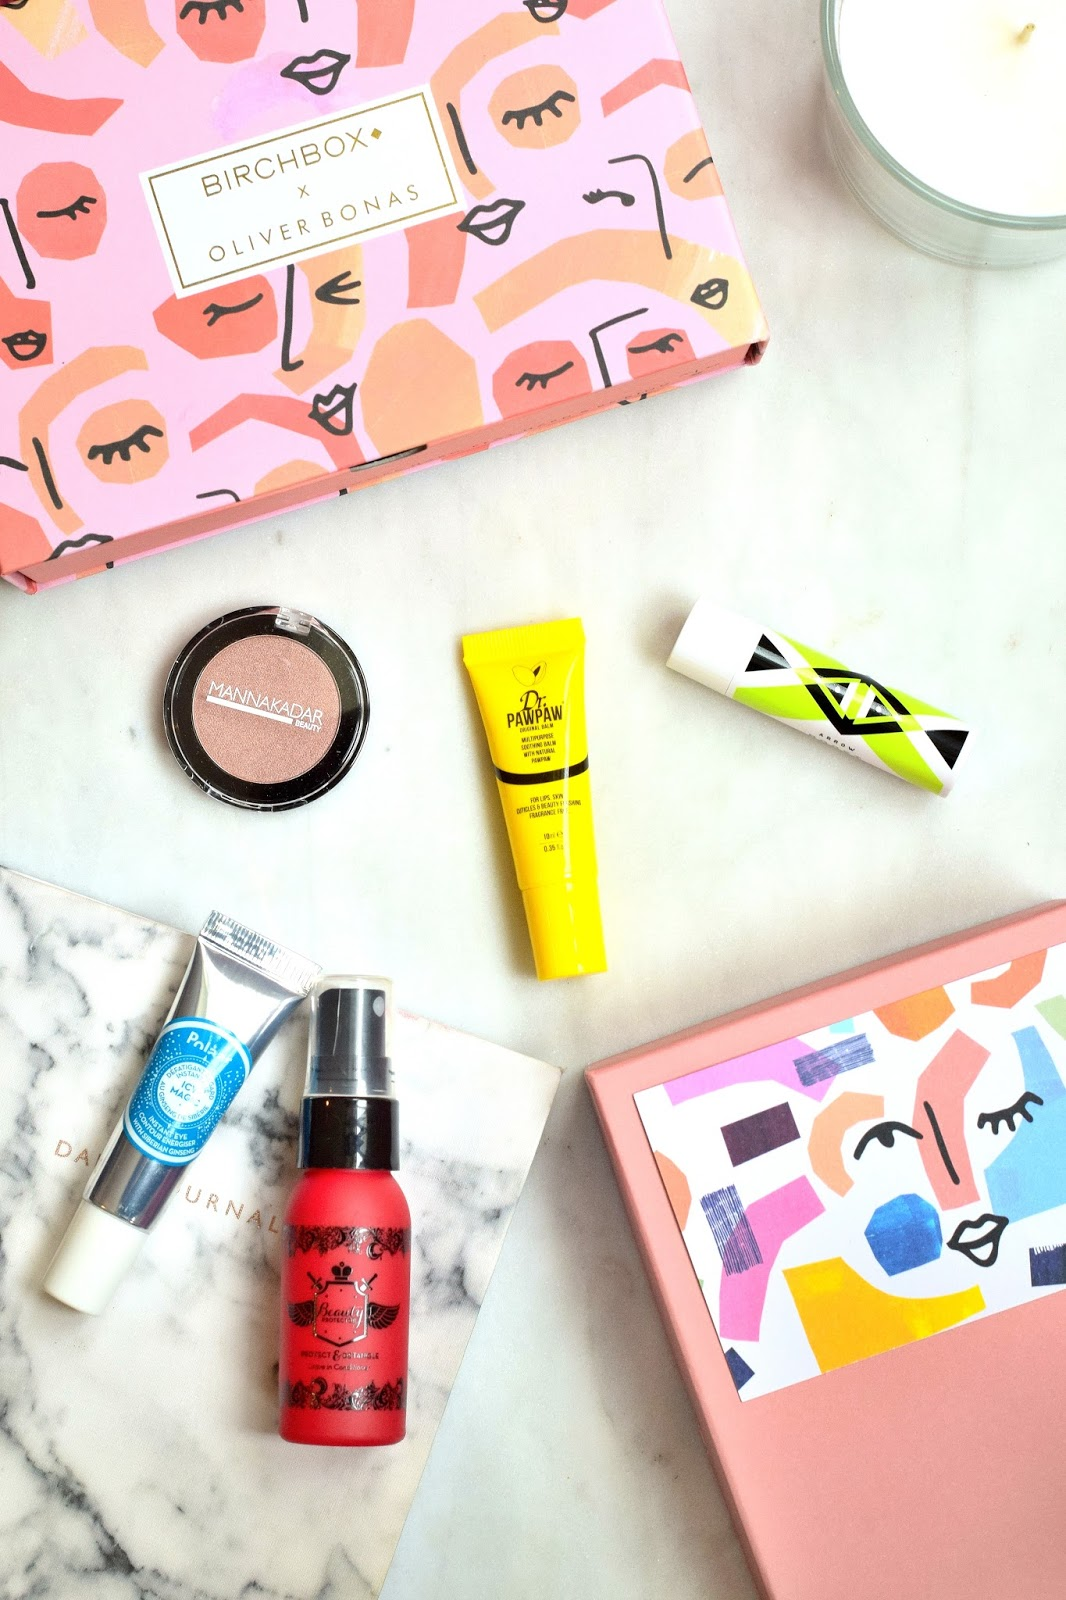 September Birchbox - Life Of A Beauty Nerd